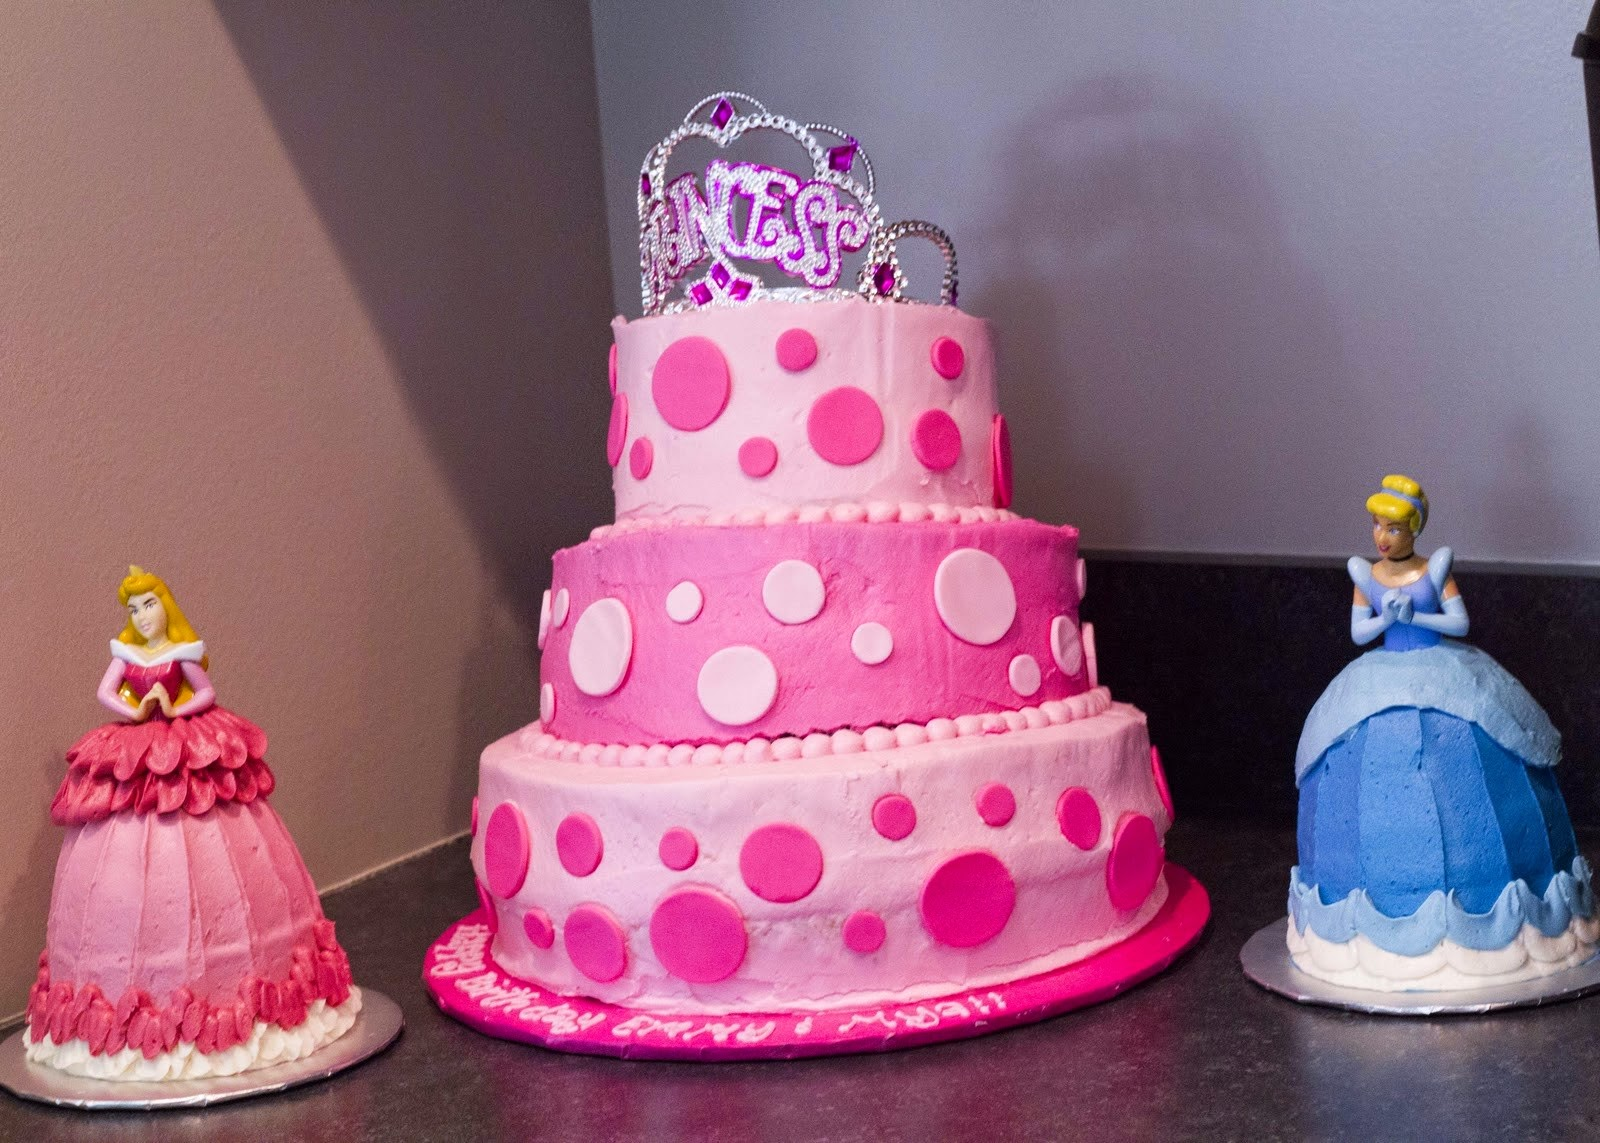 Birthday Cake Ideas Girl 7 : Top 77 Photos Of Cakes For Birthday Girls Cakes Gallery